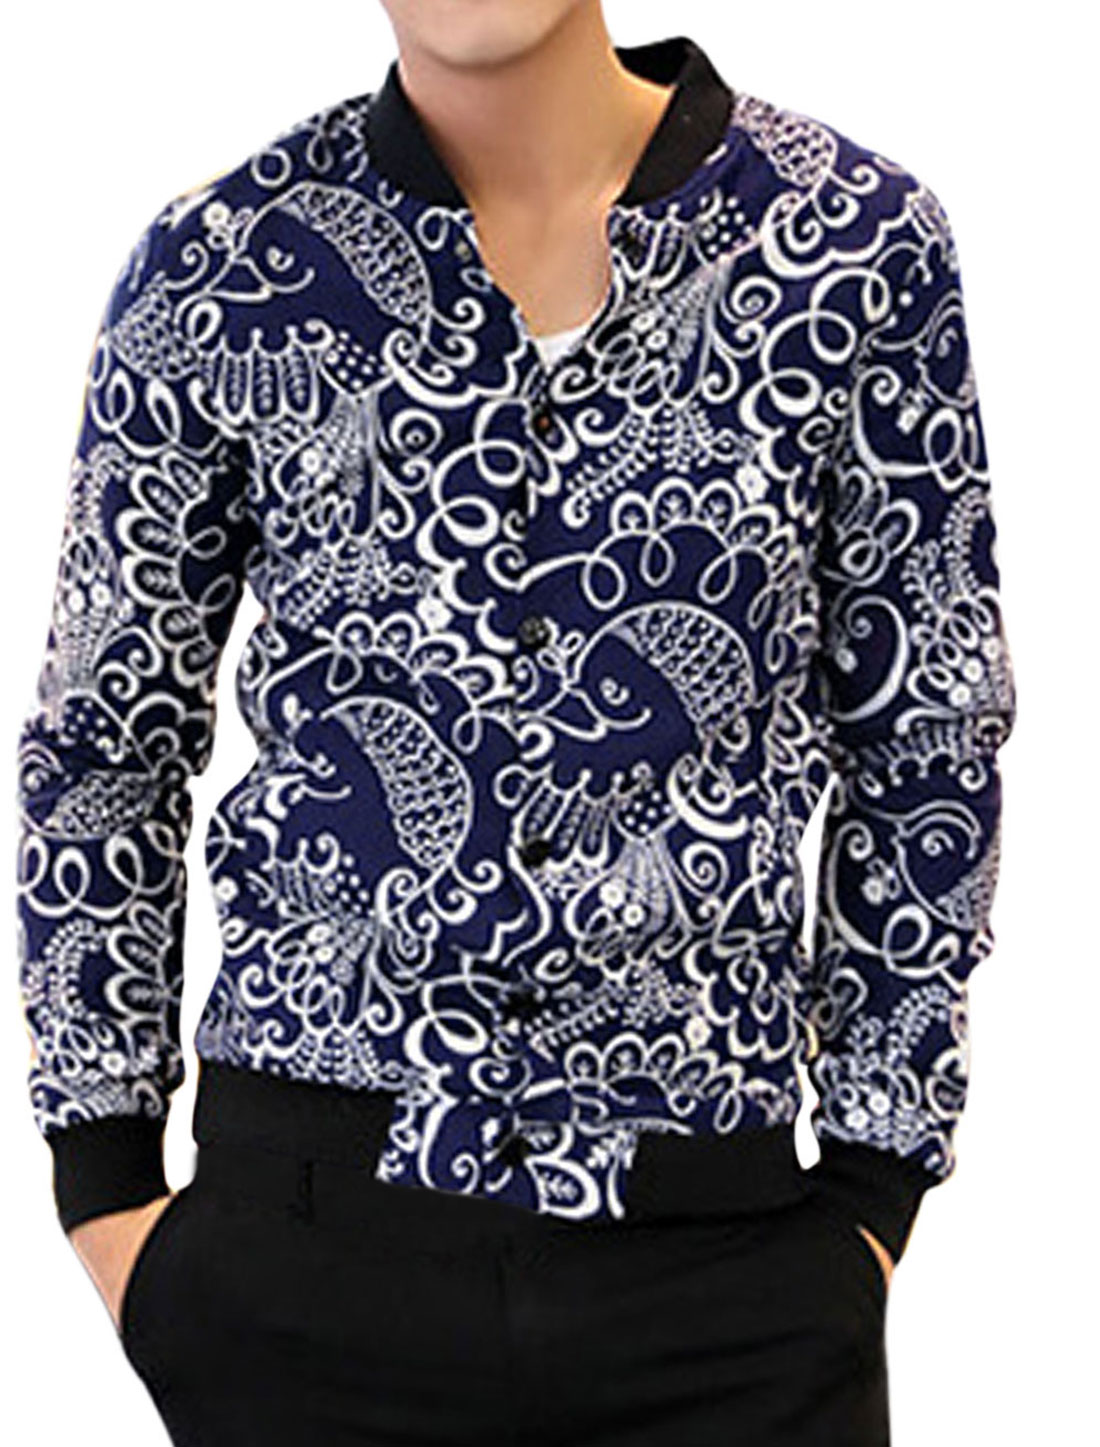 Men Snap Buttons Closed Allover Floral Bird Print Fashion Linen Jacket Navy Blue M